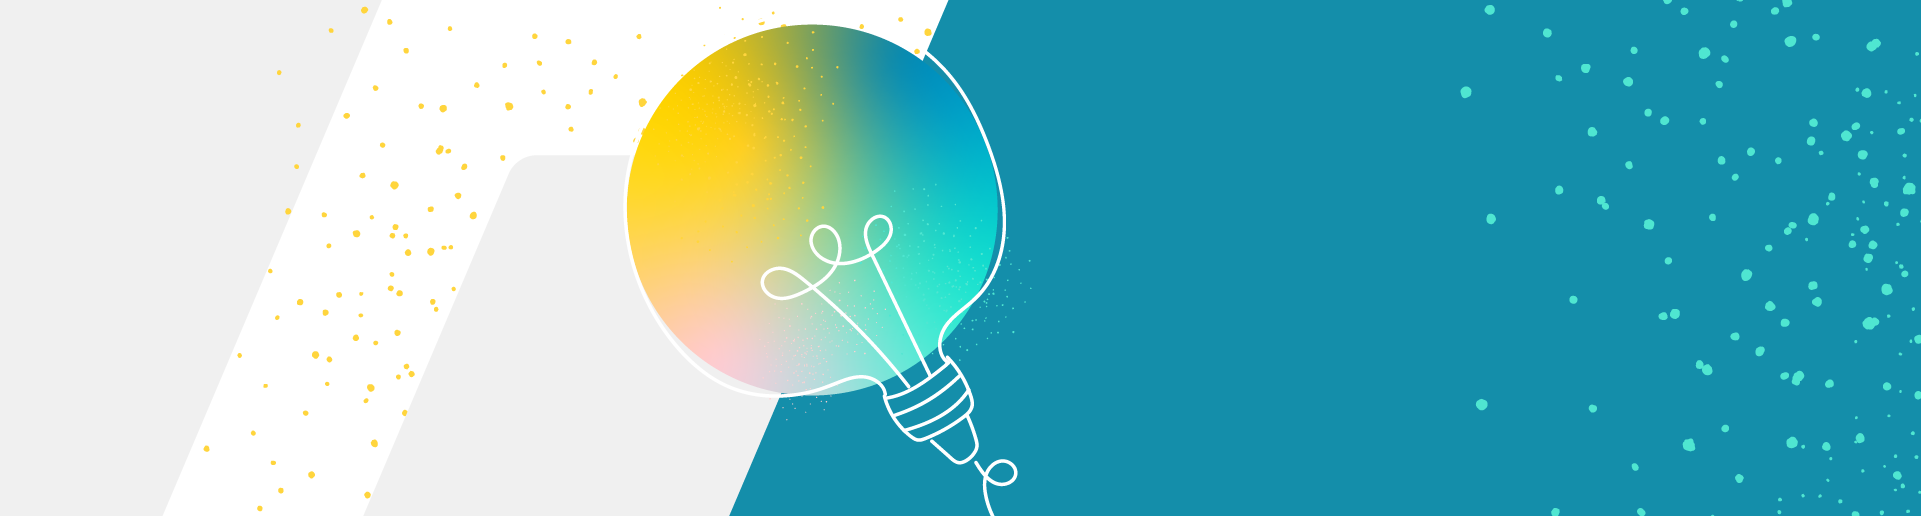 Innovative solutions: big ideas or small projects?